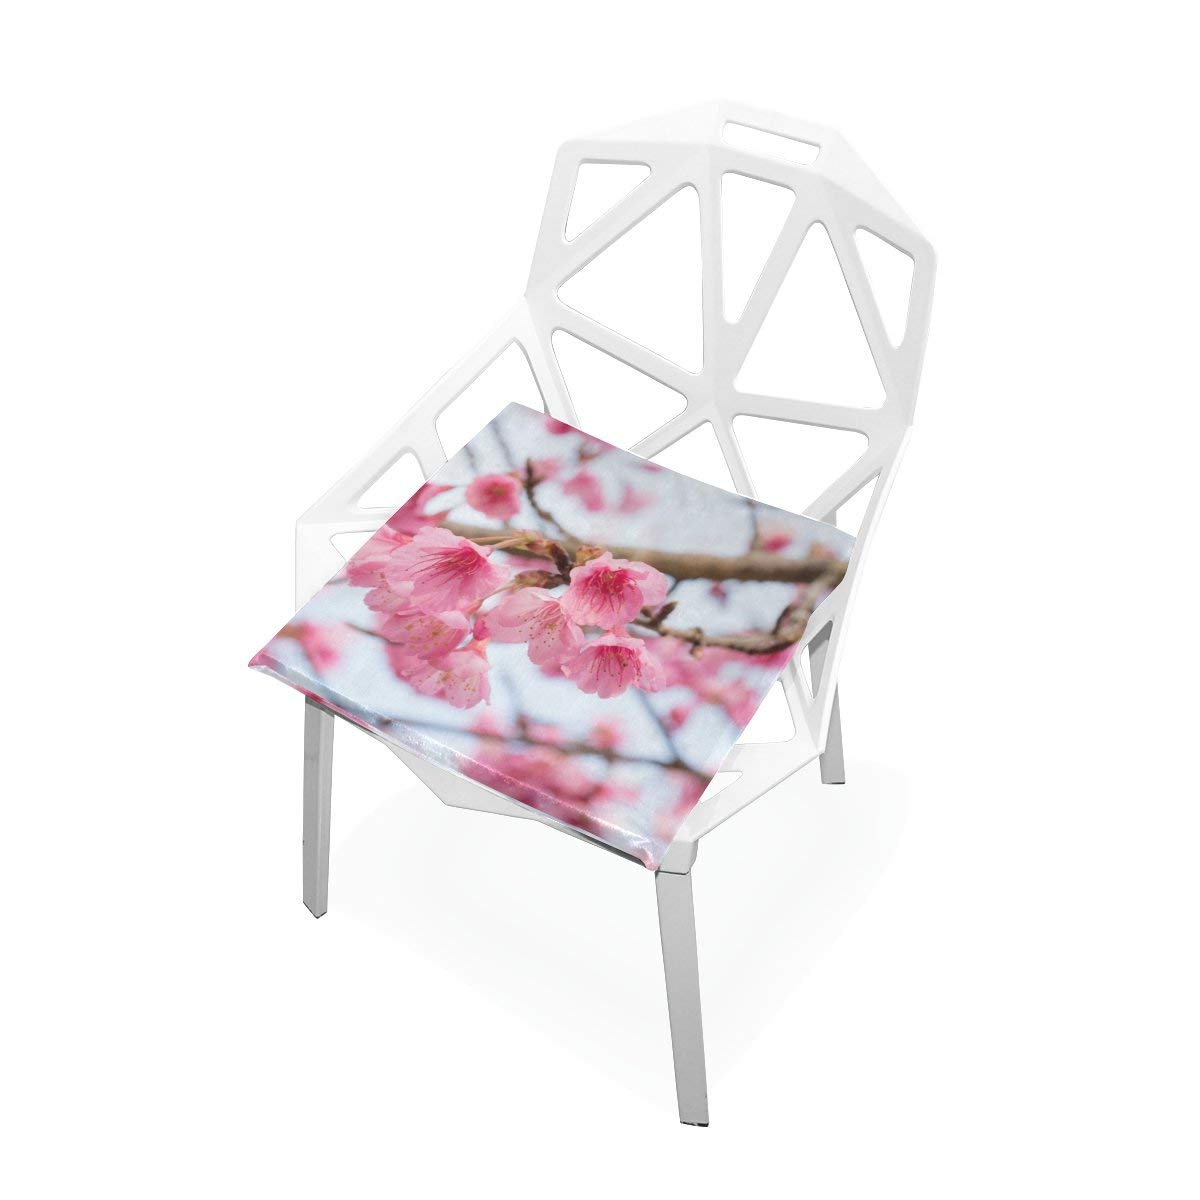 Plum Blossom Lock Portable Saucer Khaki Folding Chairs Within Recent Buy Harrison Dining Chairs, Plum, Set Of 2 In Cheap Price On (View 7 of 25)